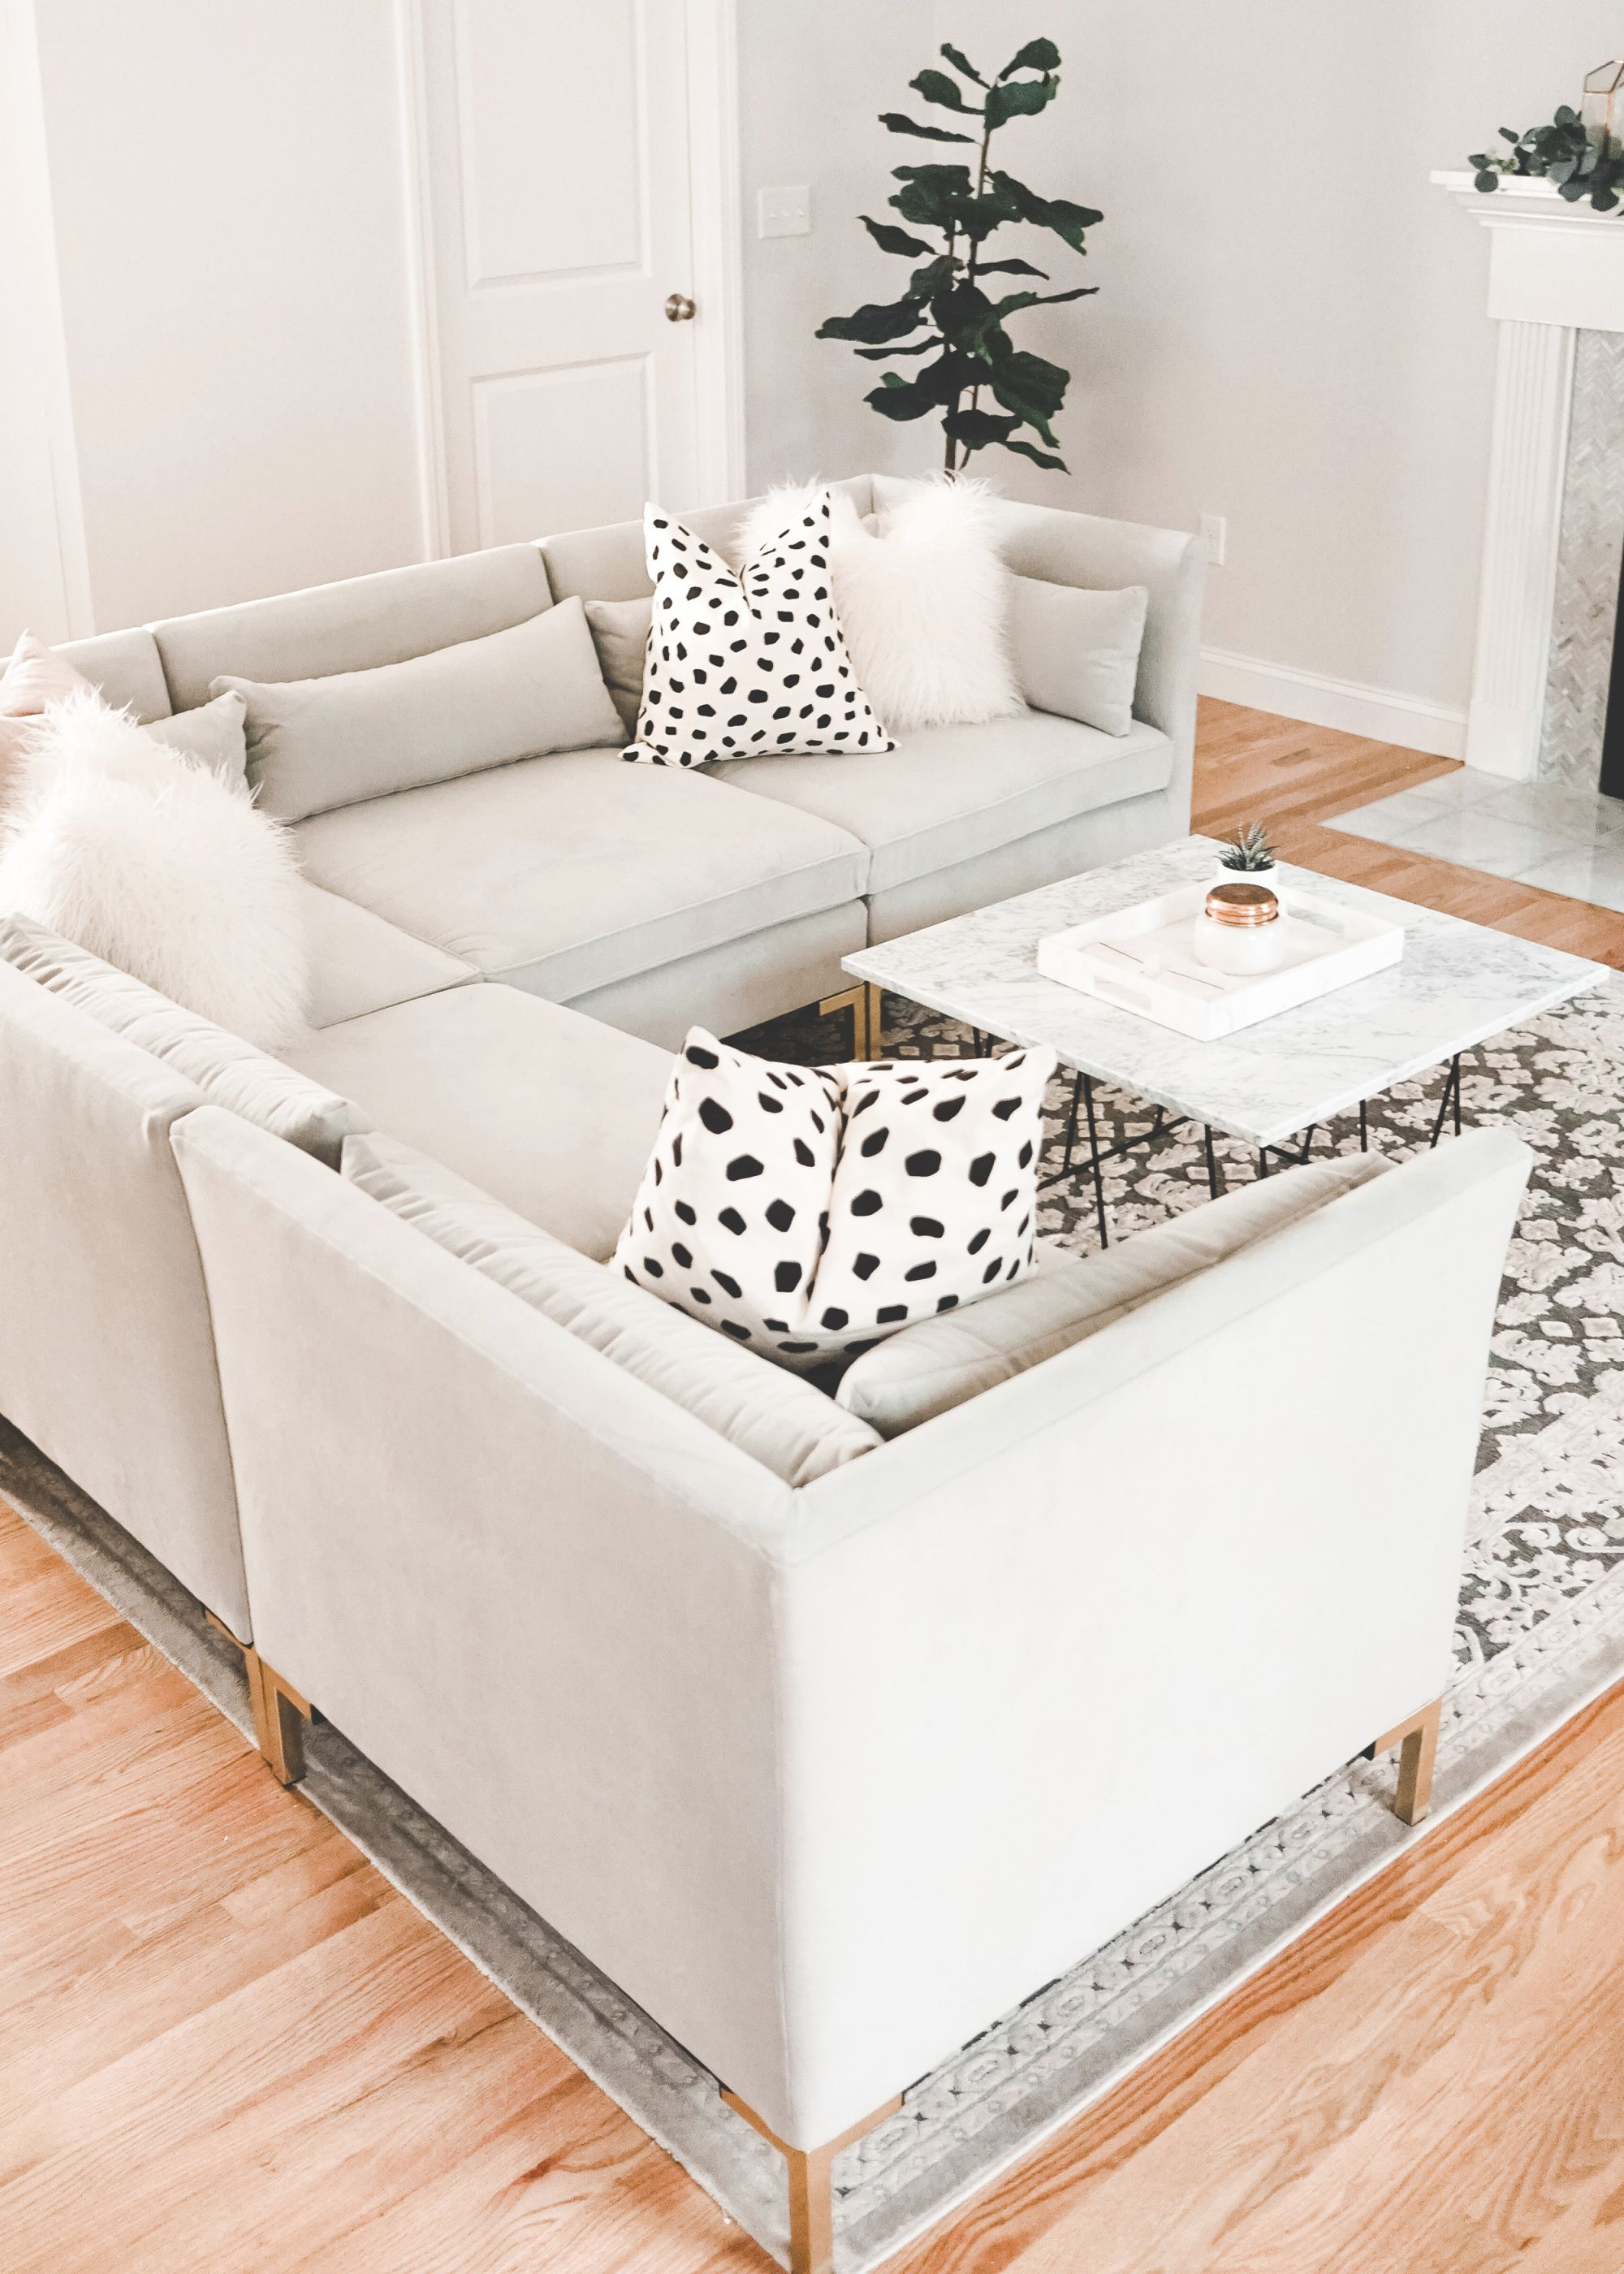 Living Room Update With Raymour & Flanigan – A Mix Of Min intended for Raymour And Flanigan Living Room Sets